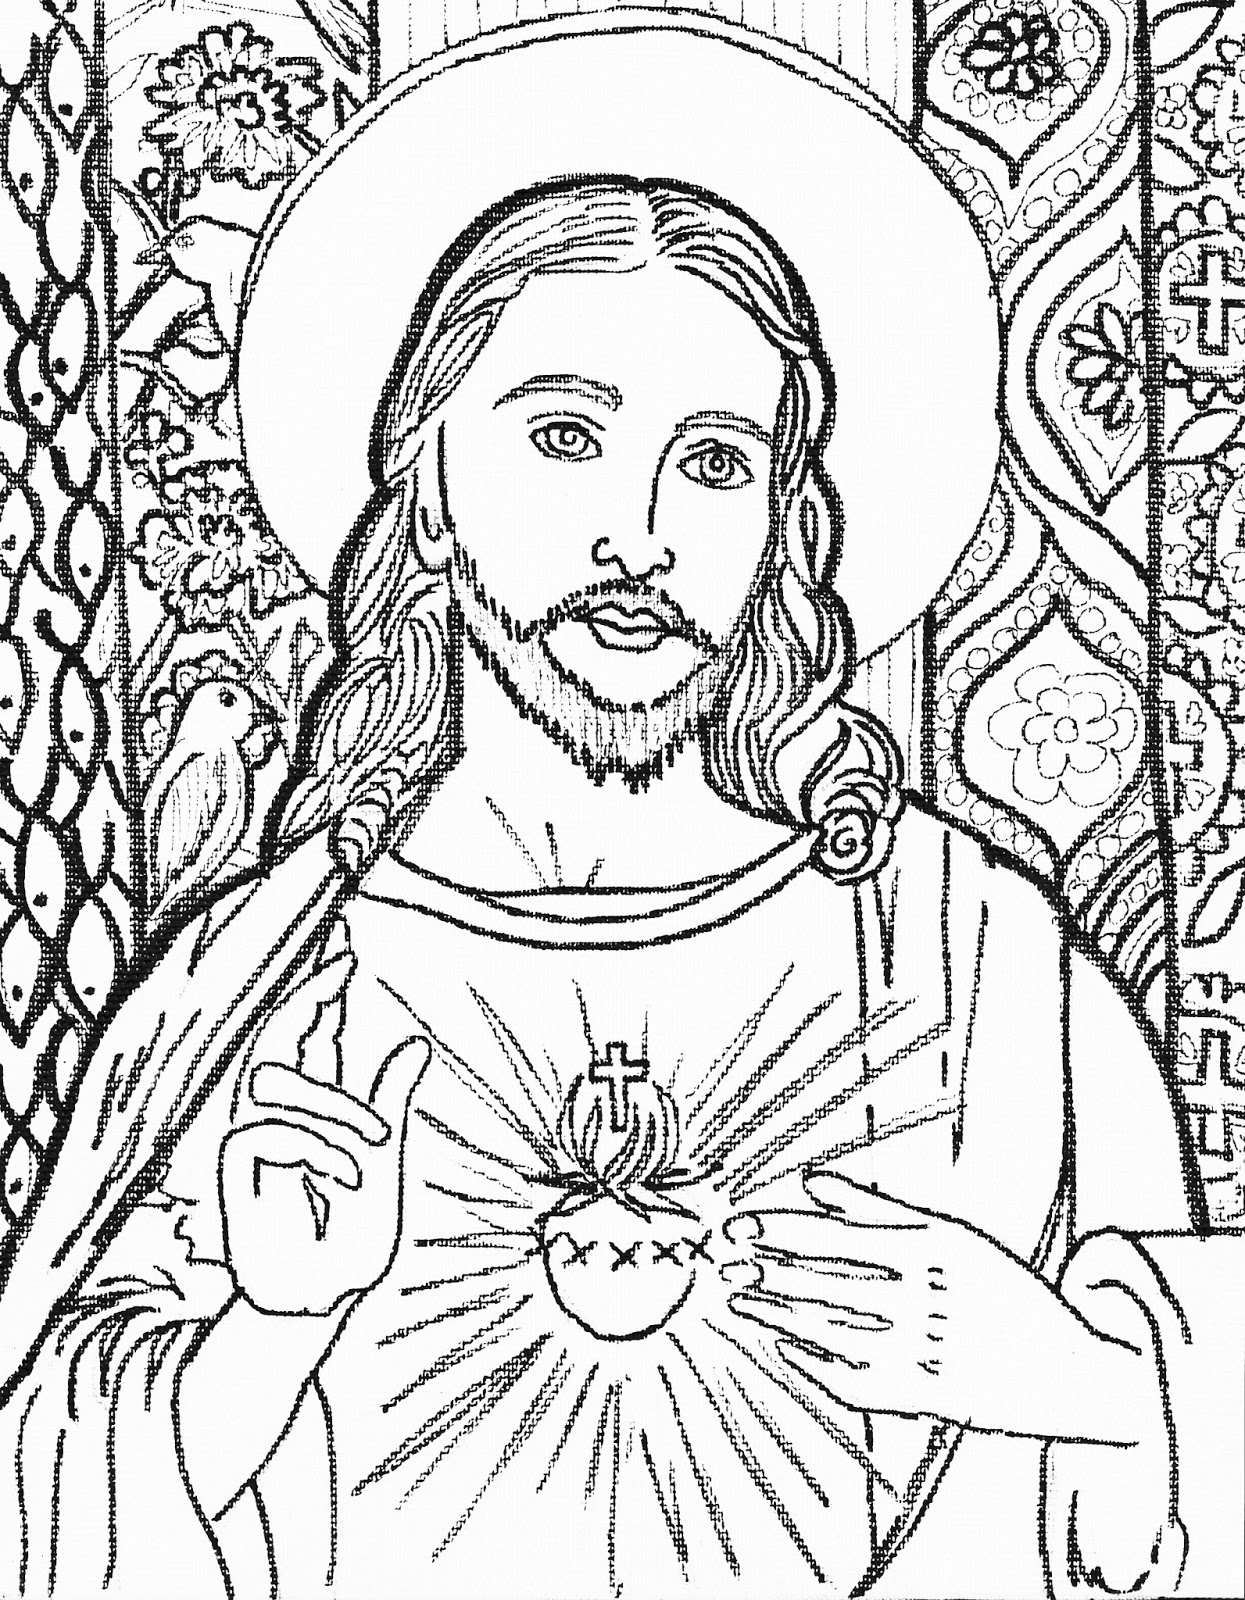 jesus face coloring page jesus face coloring page inspirationalsunday school jesus page coloring face